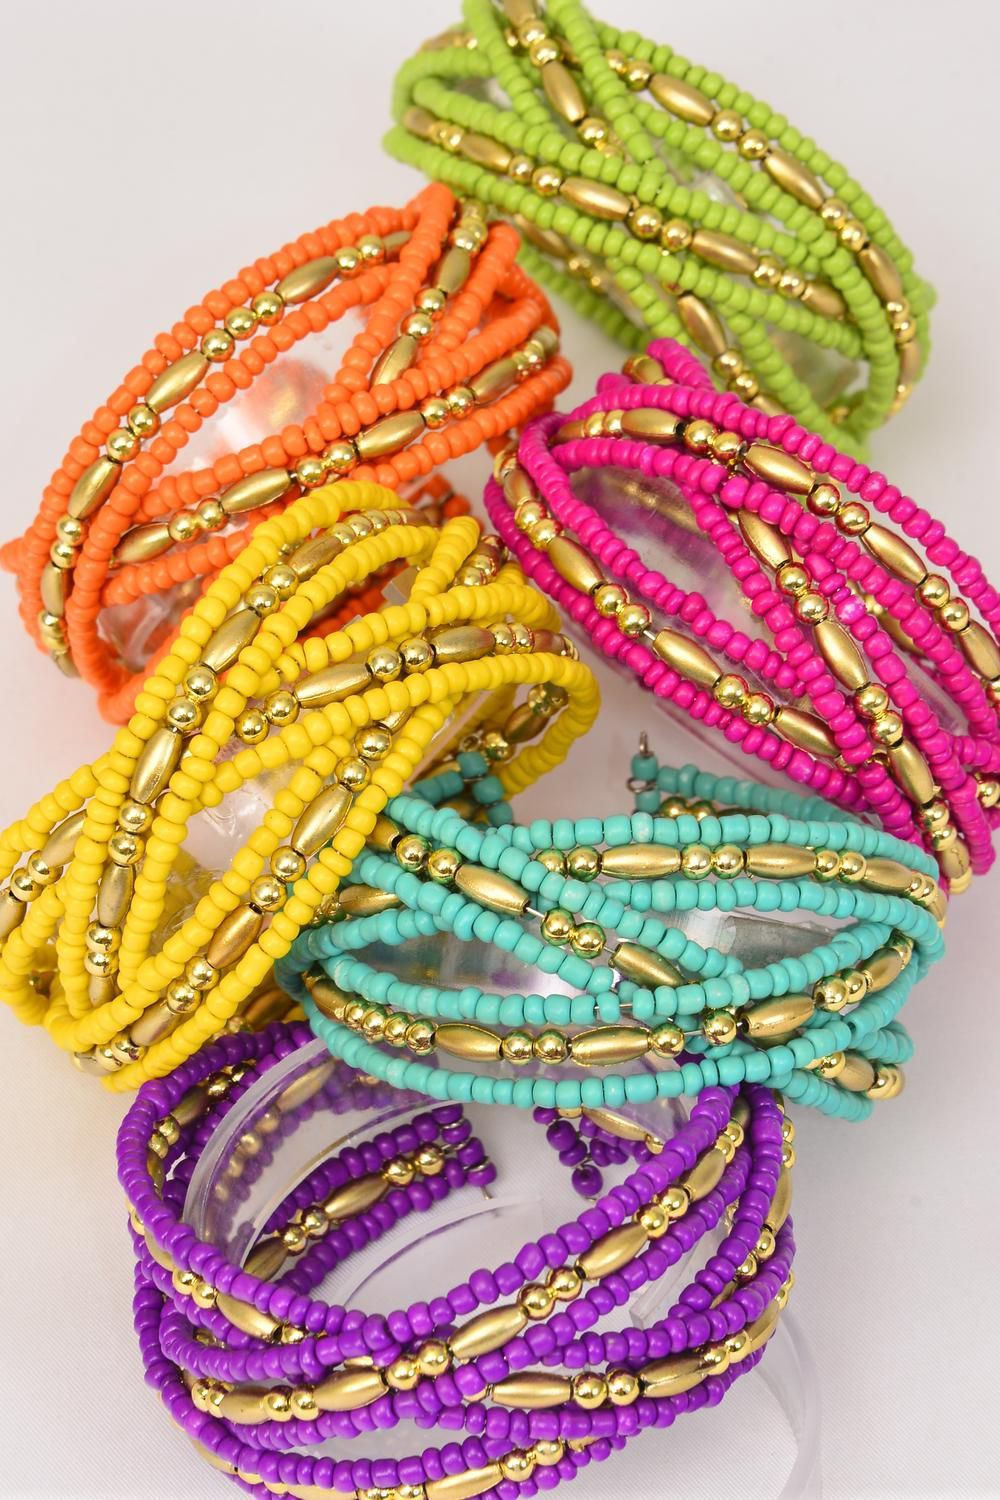 Bangle Cuff Flexible Bunch Indian Beads/DZ **Flexible** 2 Fuchsia,2 Purple,2 Gold,2 Blue,1 Yellow,1 Red,1 Orange,1 Lime,8 Color Asst,Hang Tag & OPP bag & UPC Code